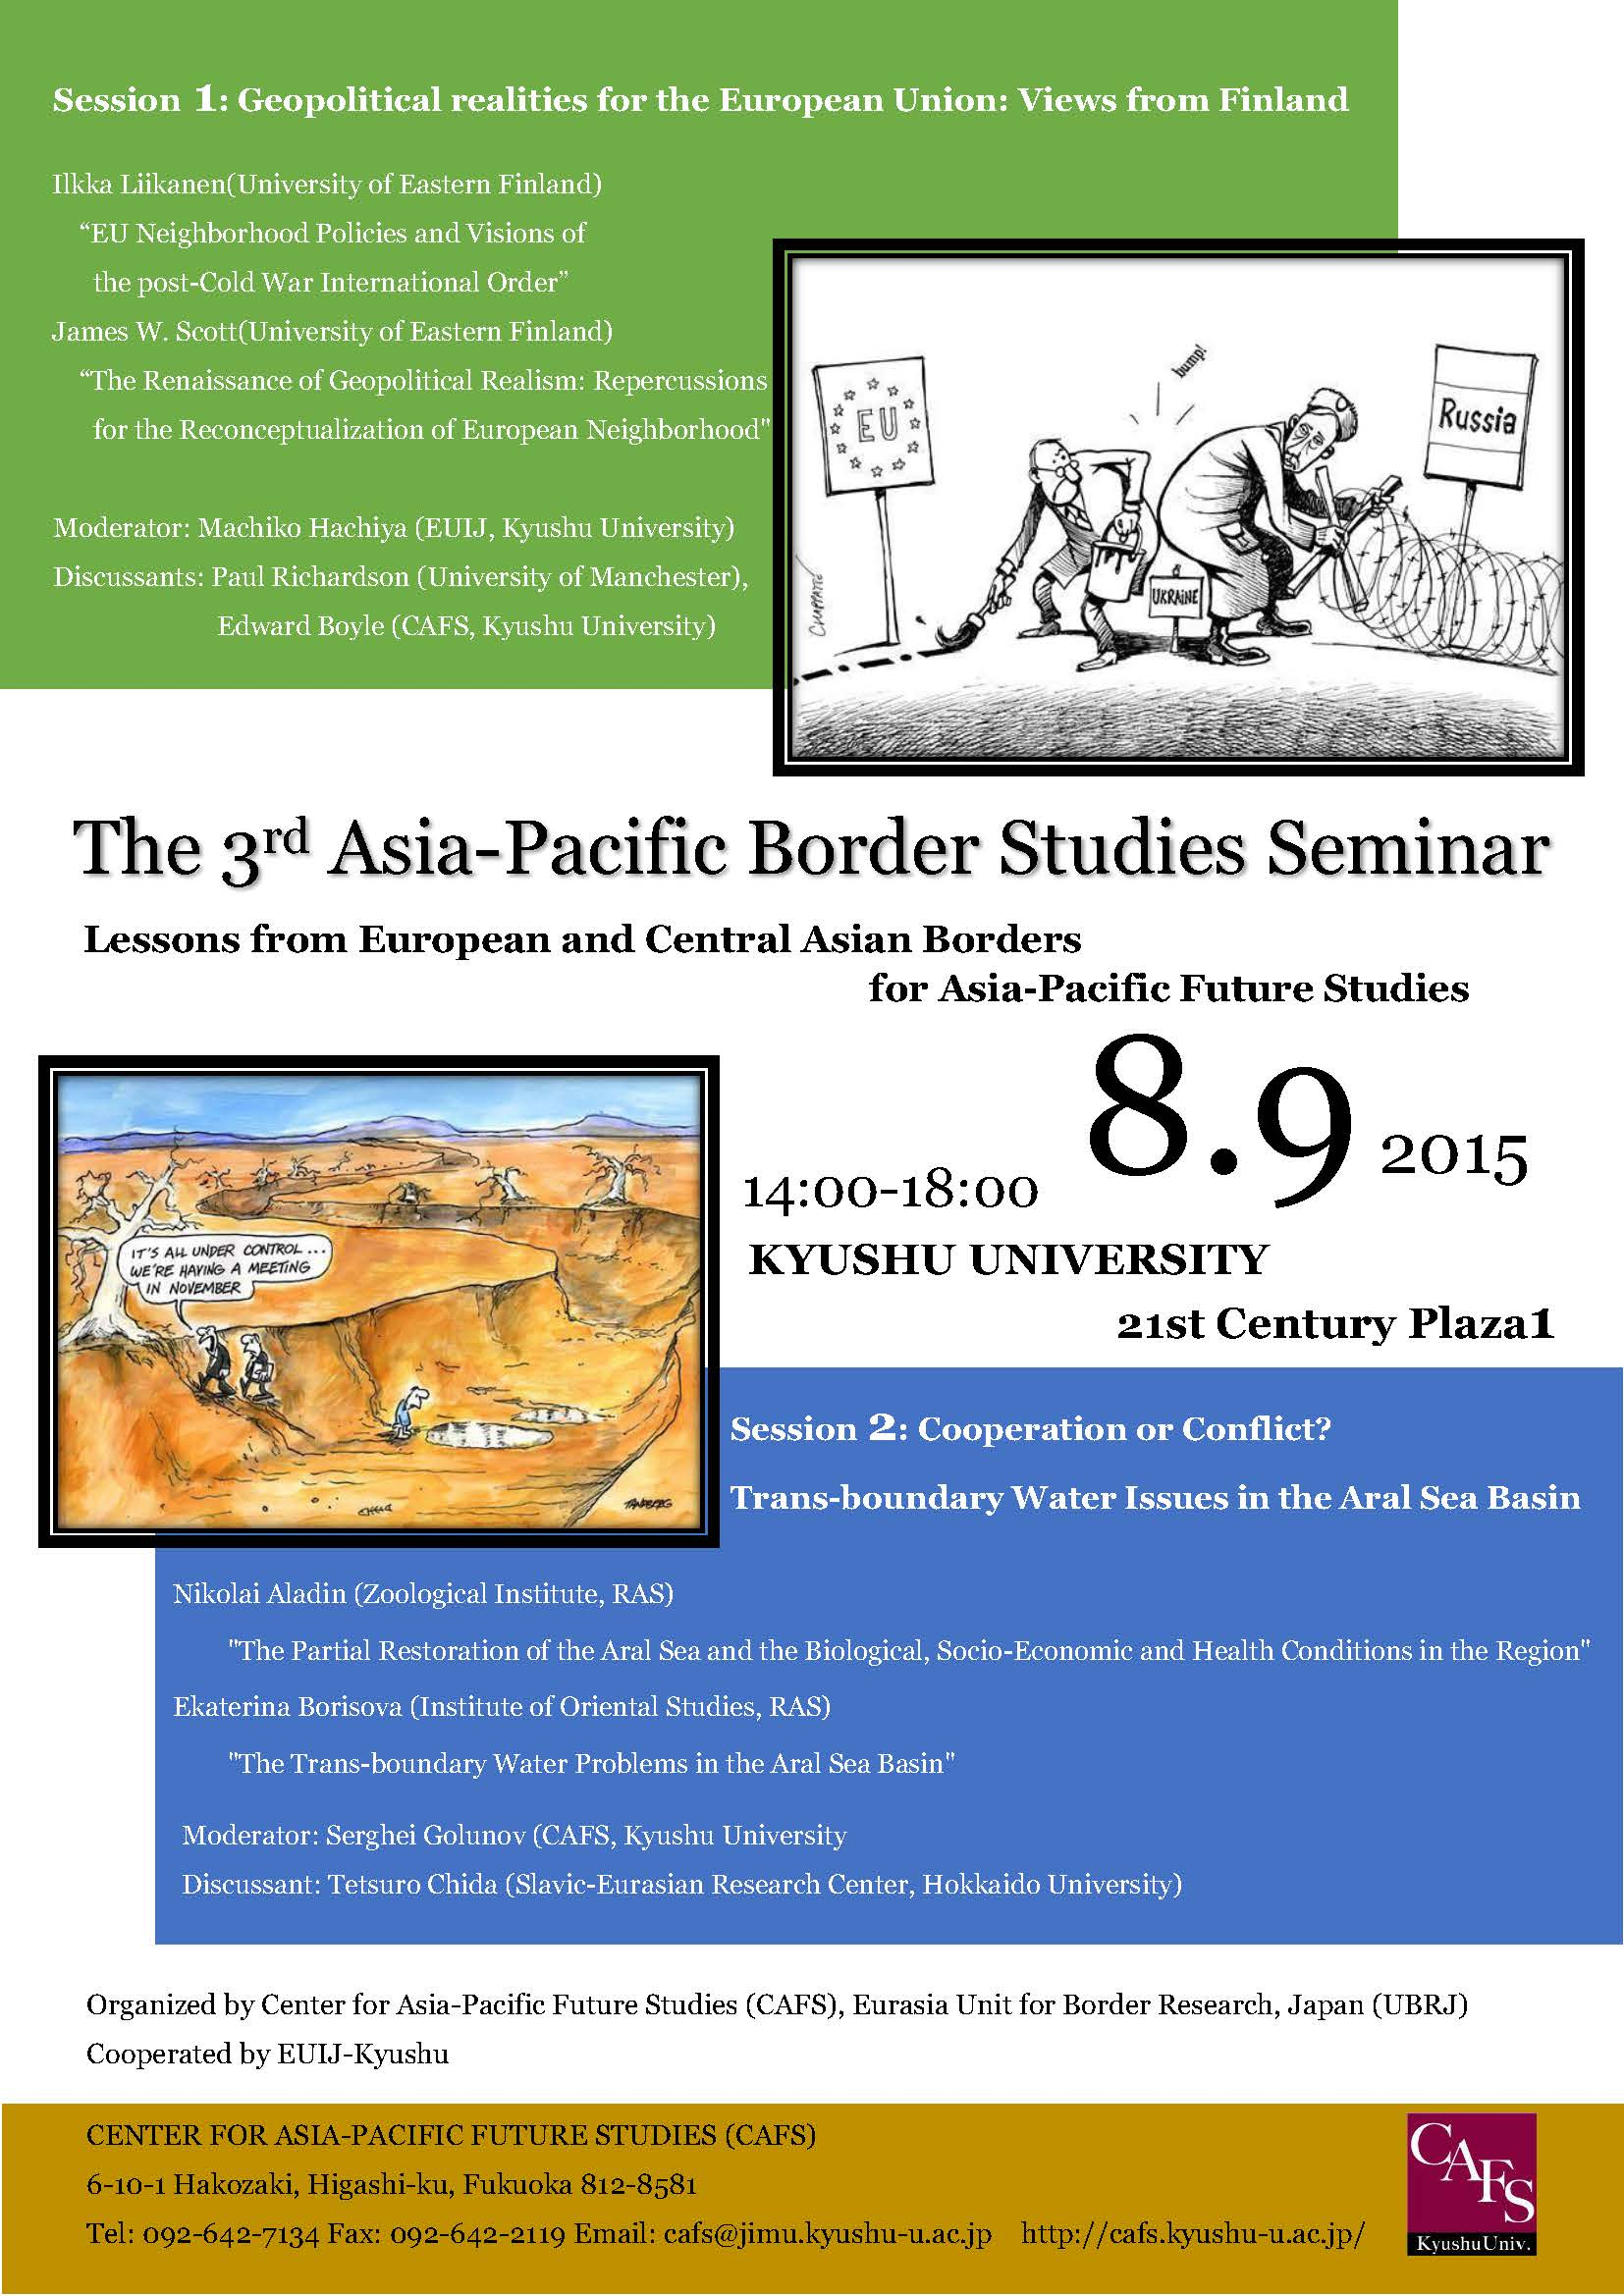 0728poster_The 3rd Asia-Pacific Border Studies Seminar.jpg